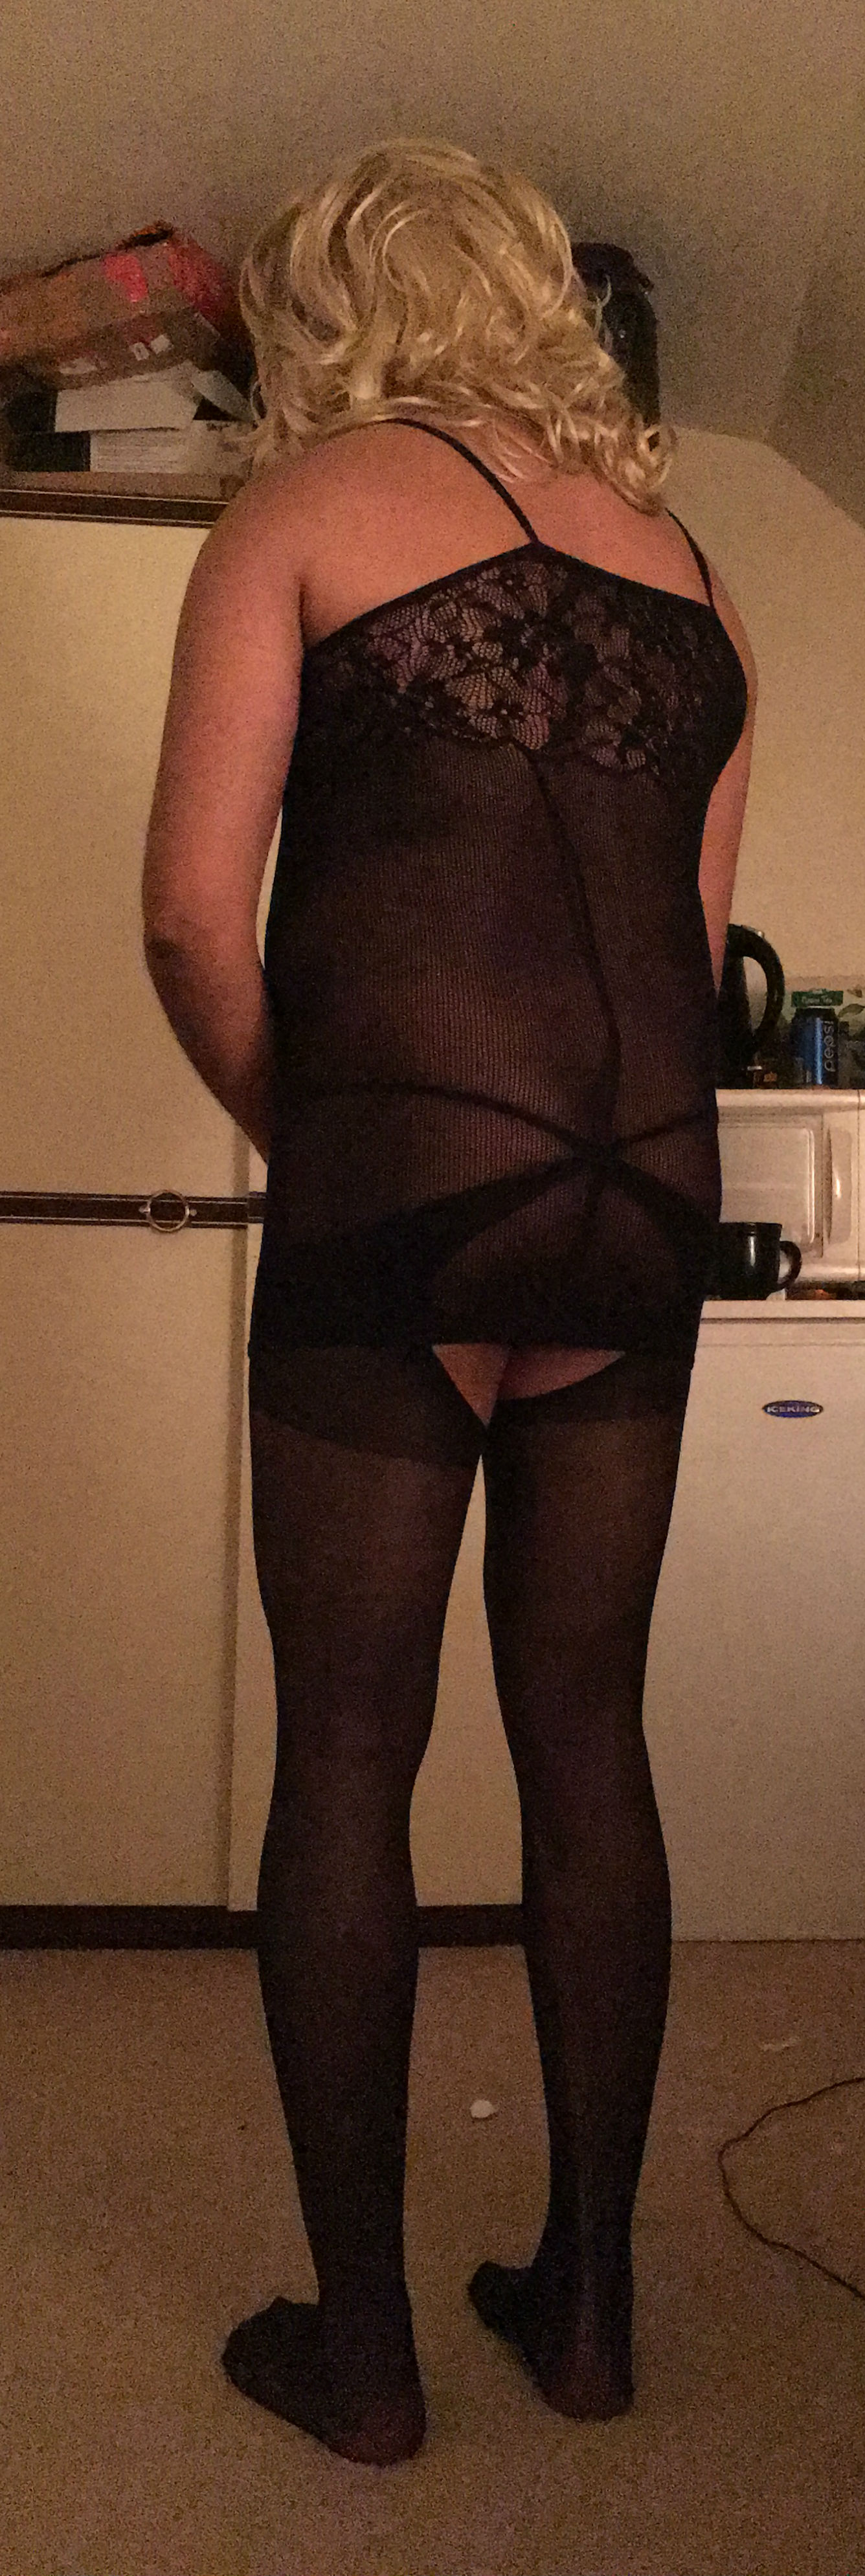 from Ryder newcastle gay escort